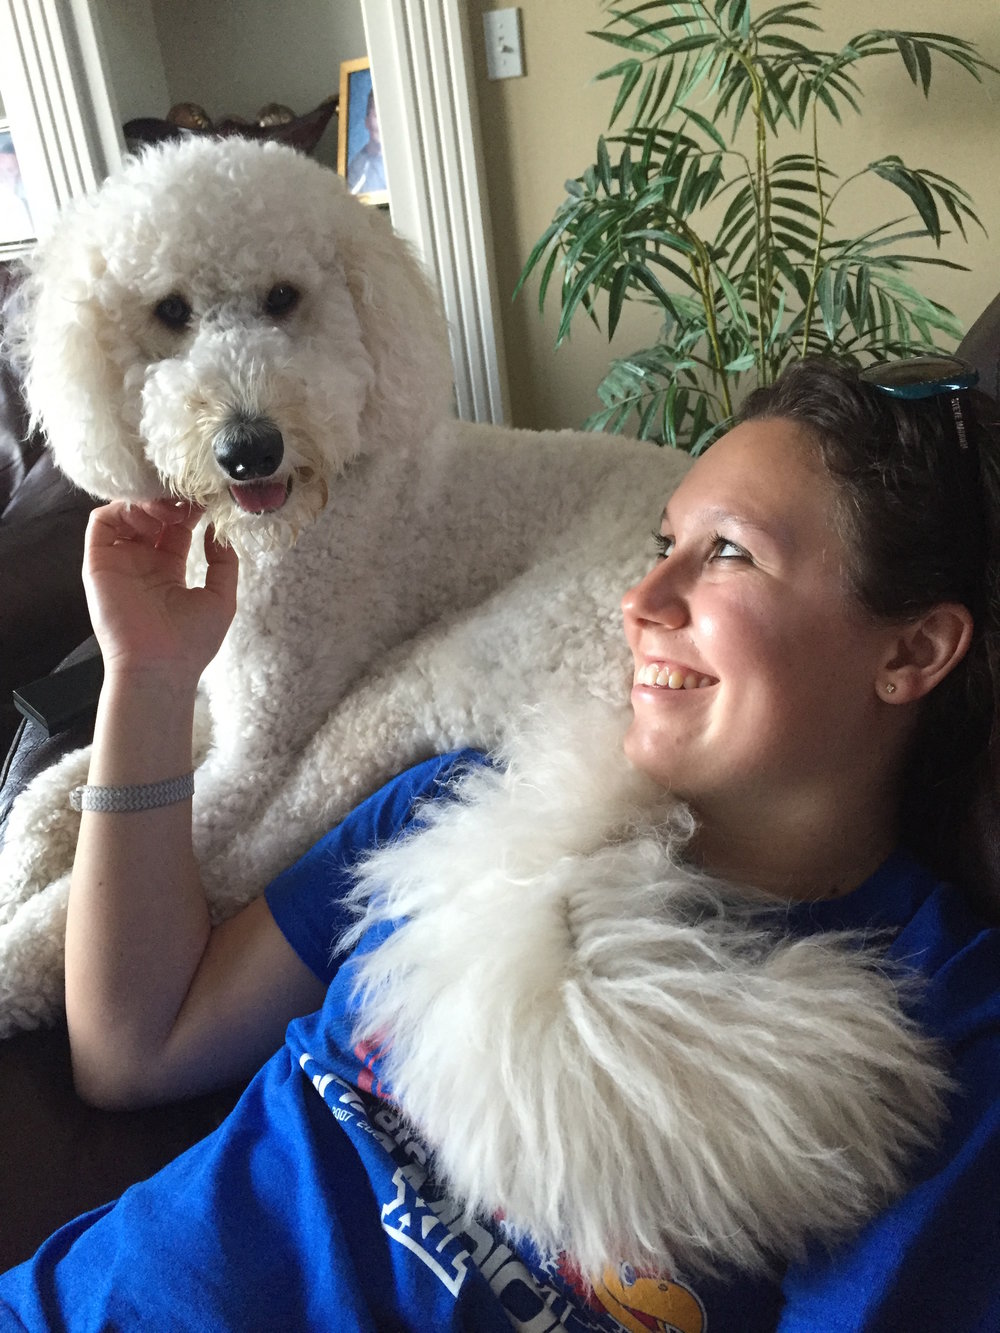 """I enjoy caring for pets because they are always so happy to see you, and I enjoy spending time with them to develop a bond."" -Nicole"